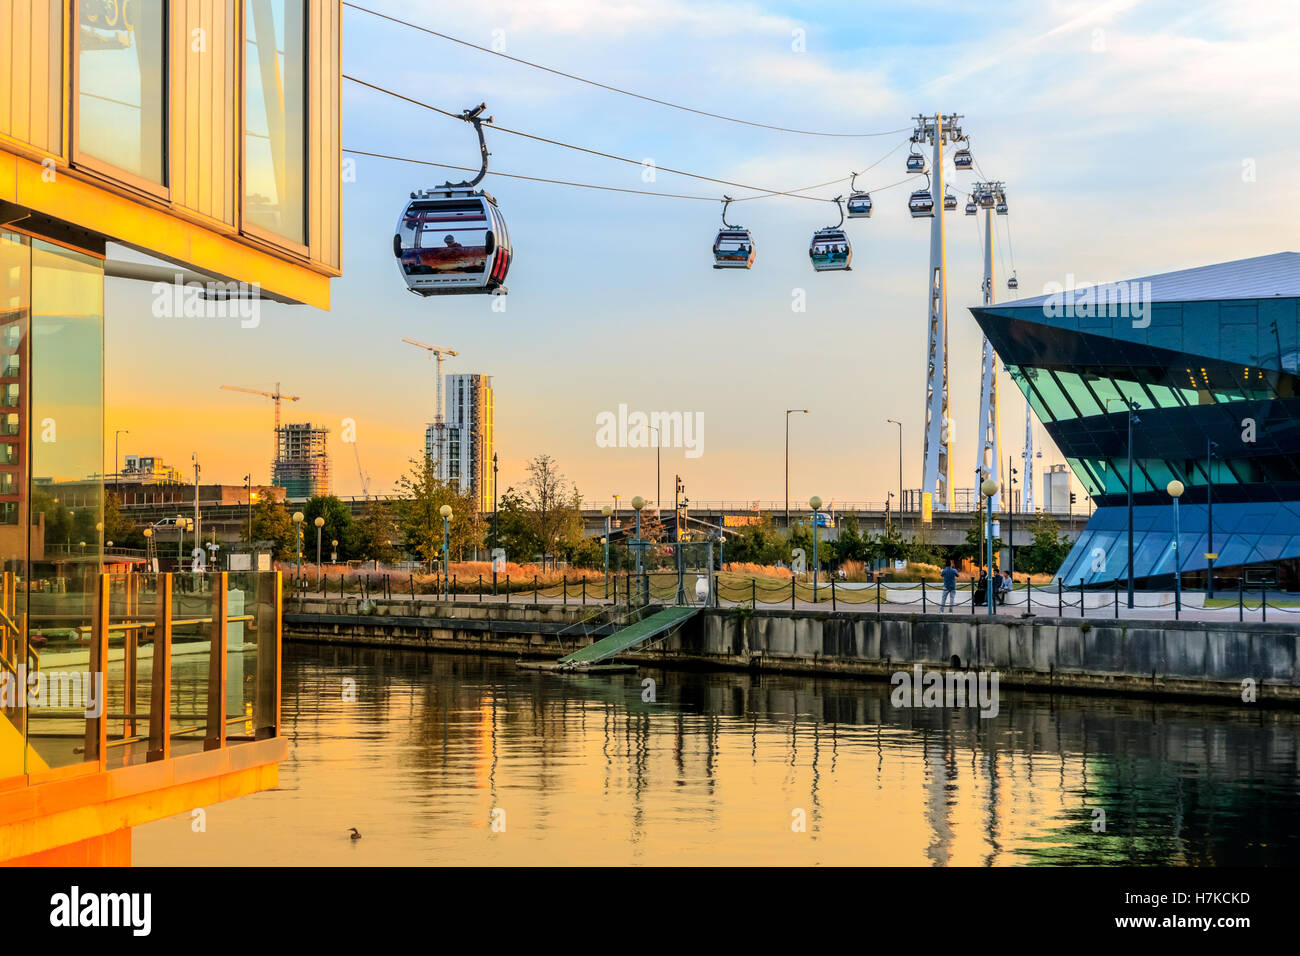 Thames Cable car at Royal Victoria Dock in London at sunset - Stock Image